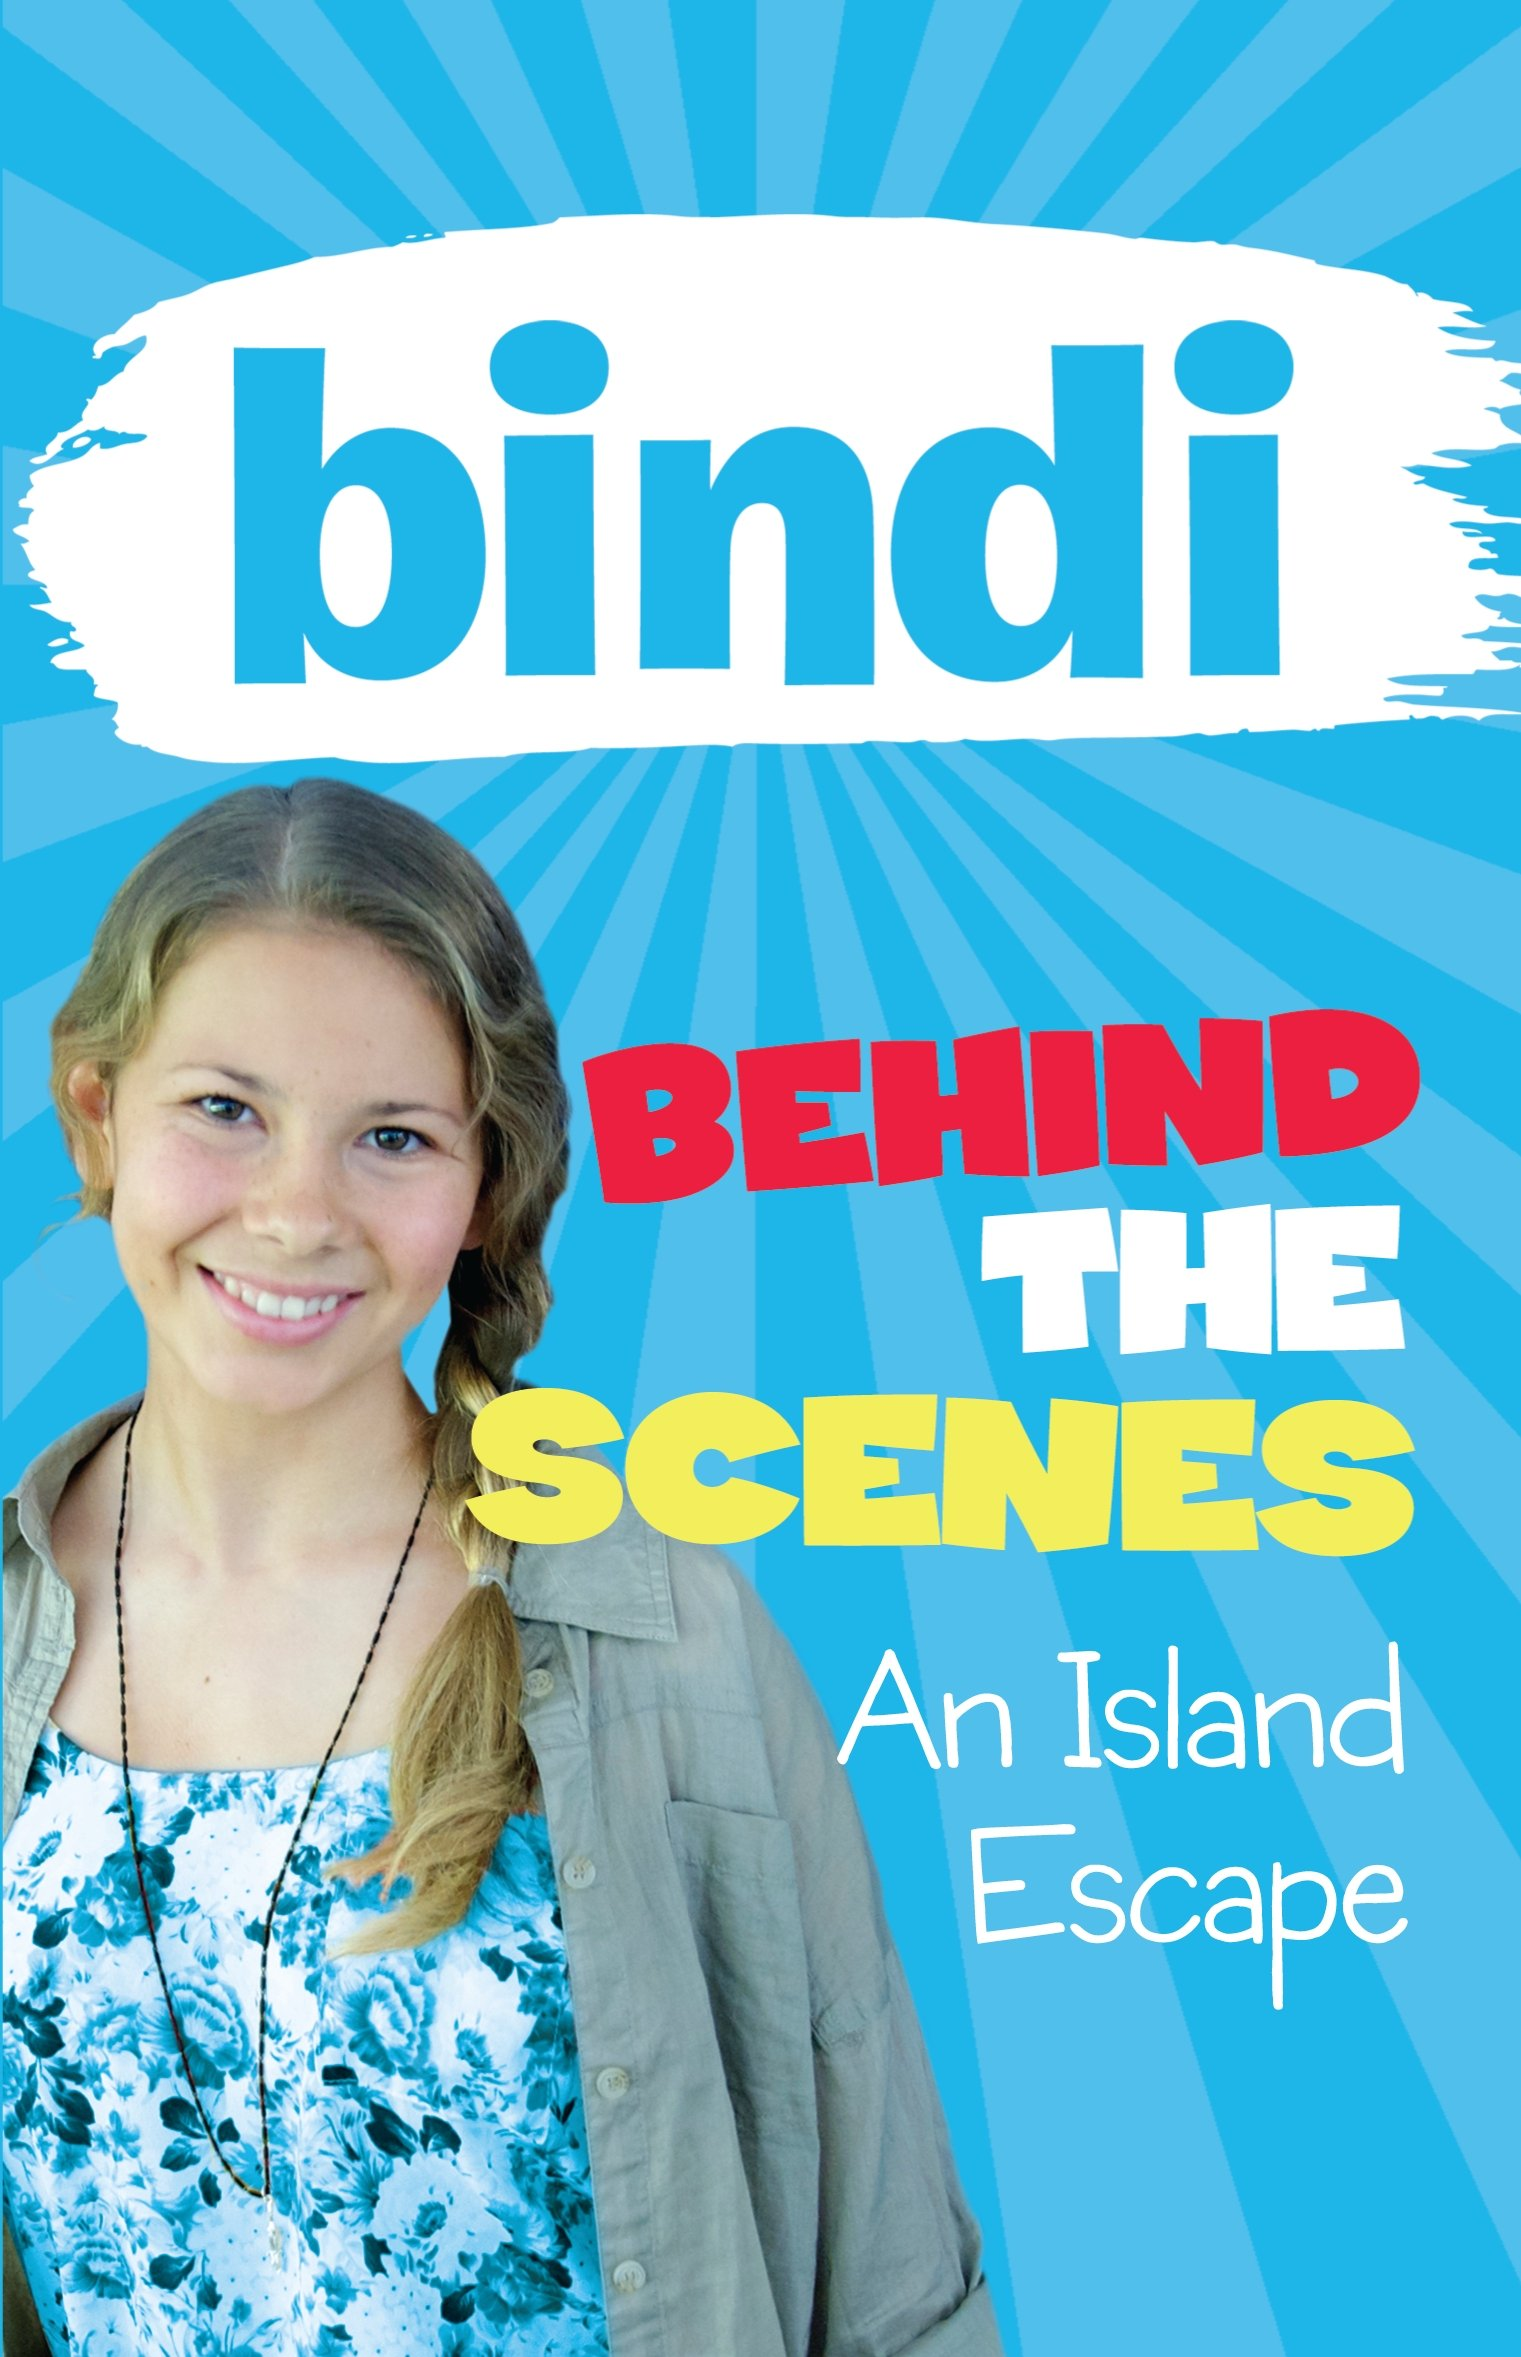 Read Online An Island Escape (Bindi Behind the Scenes) ebook